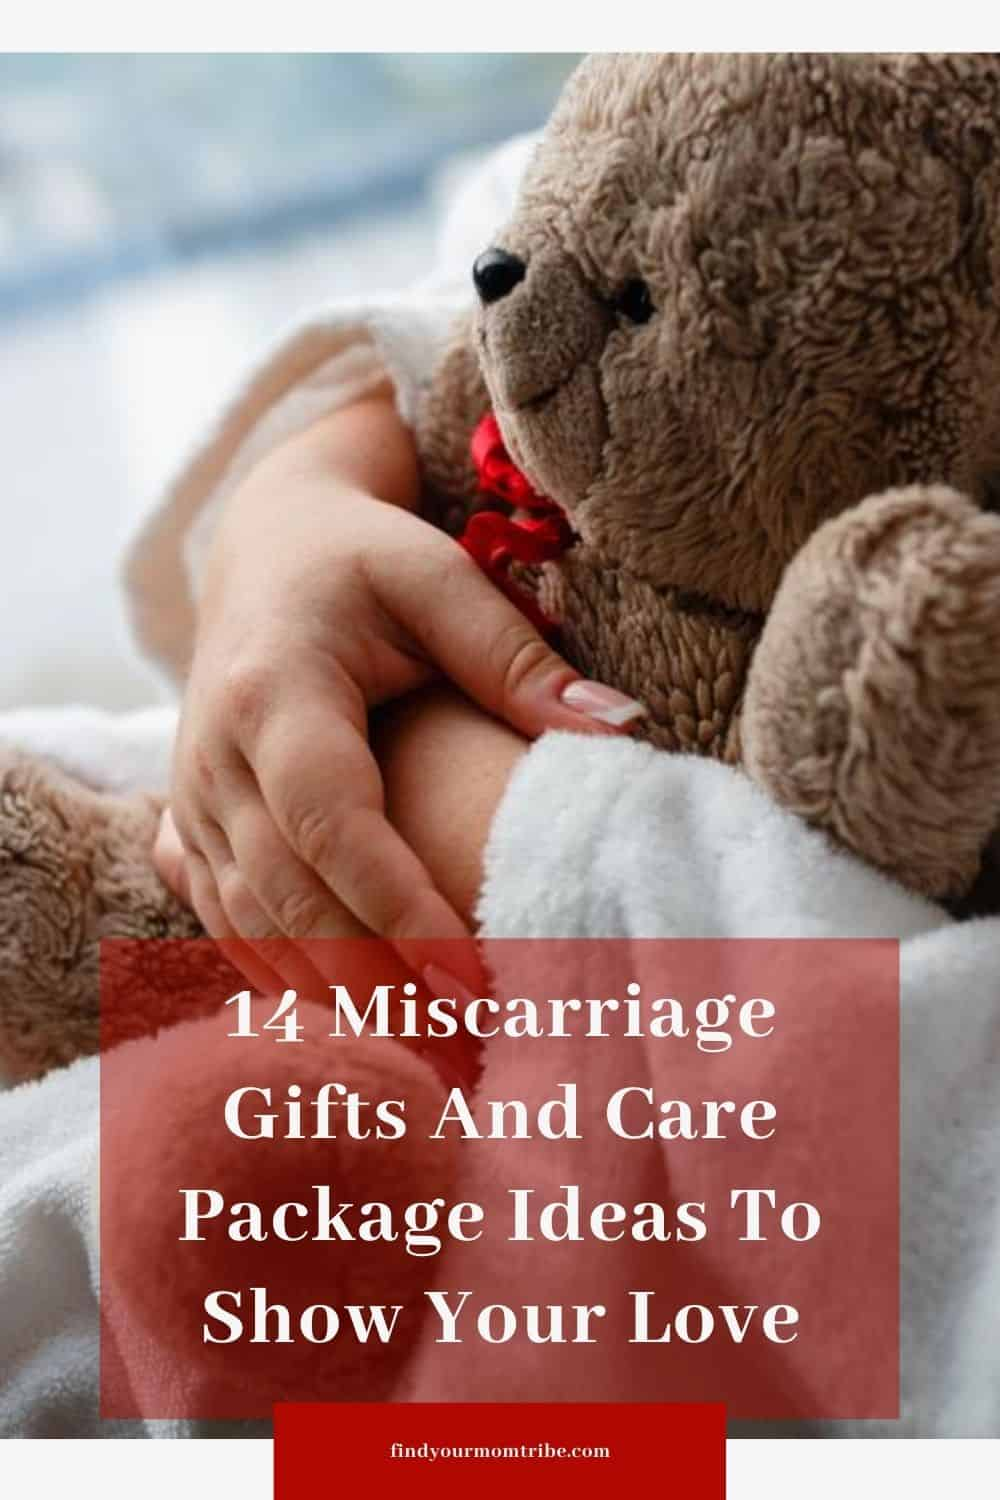 14 Miscarriage Gifts And Care Package Ideas To Show Your Love